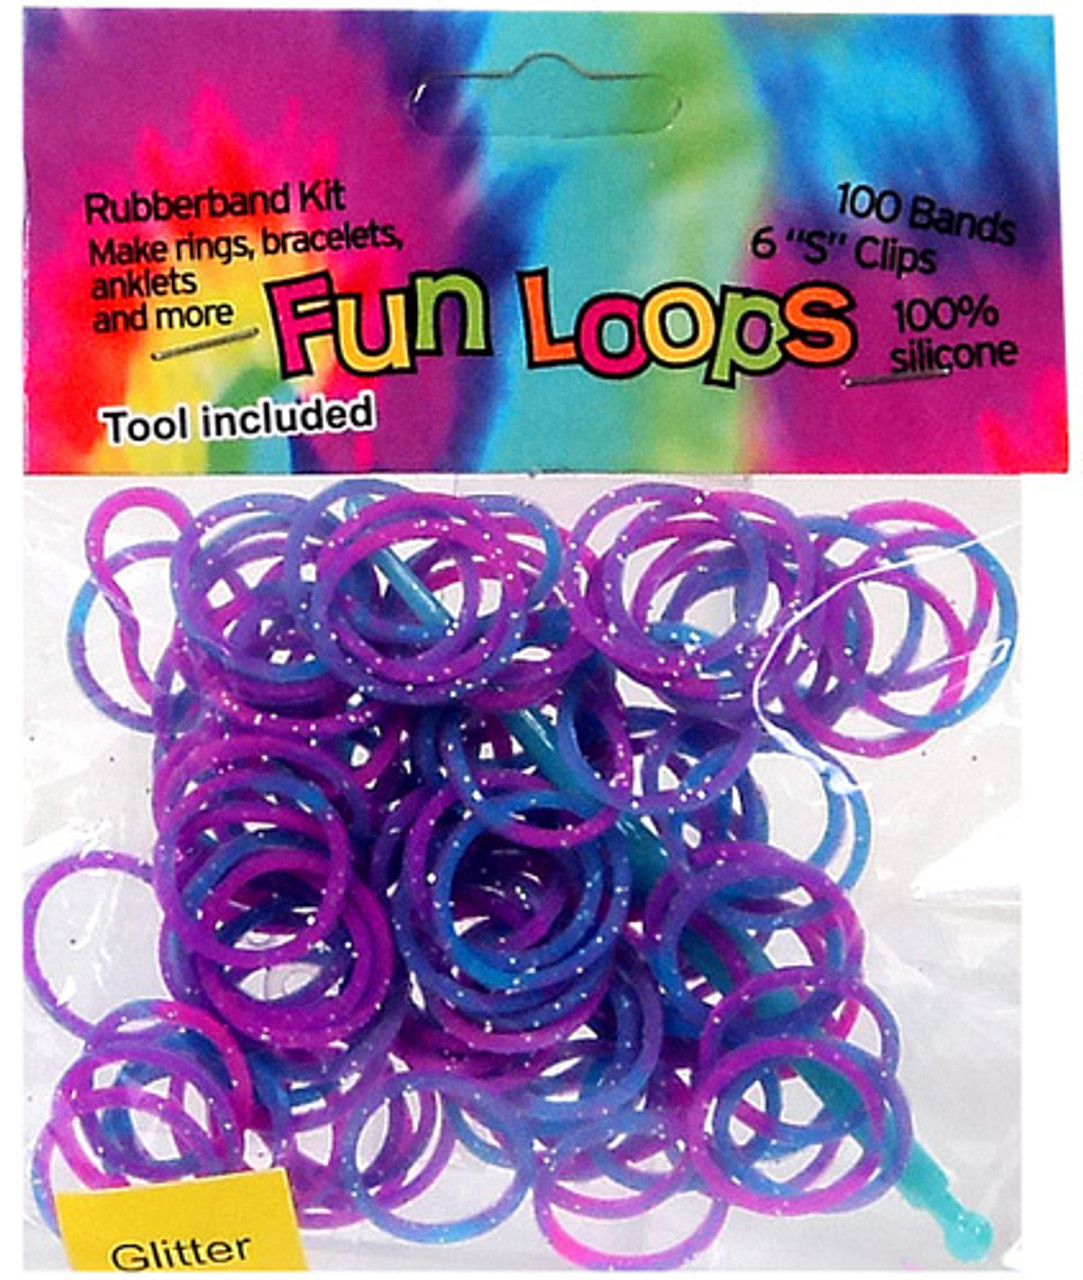 Rubber Band Bracelets Fun Loops Pink & Blue Tie Dye Glitter Rubber Bands Refill Pack [100 ct]